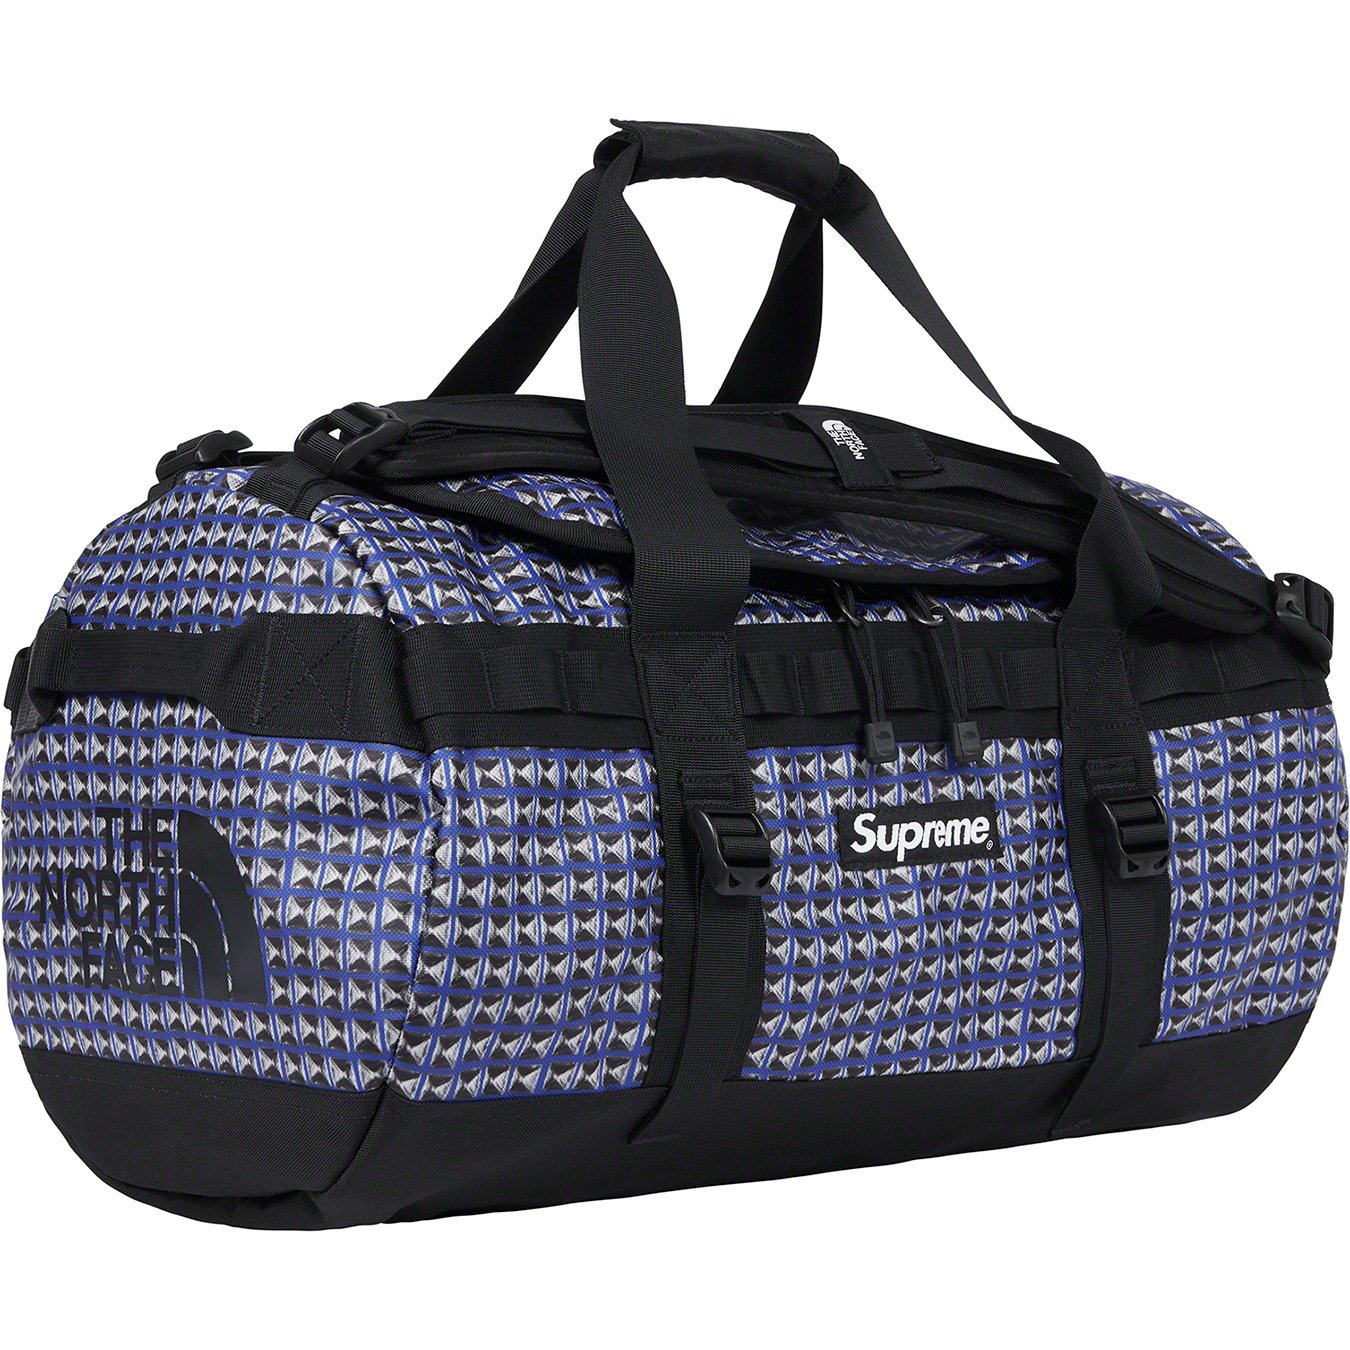 supreme-the-north-face-studded-21ss-collection-release-20210327-week5-small-base-camp-duffle-bag